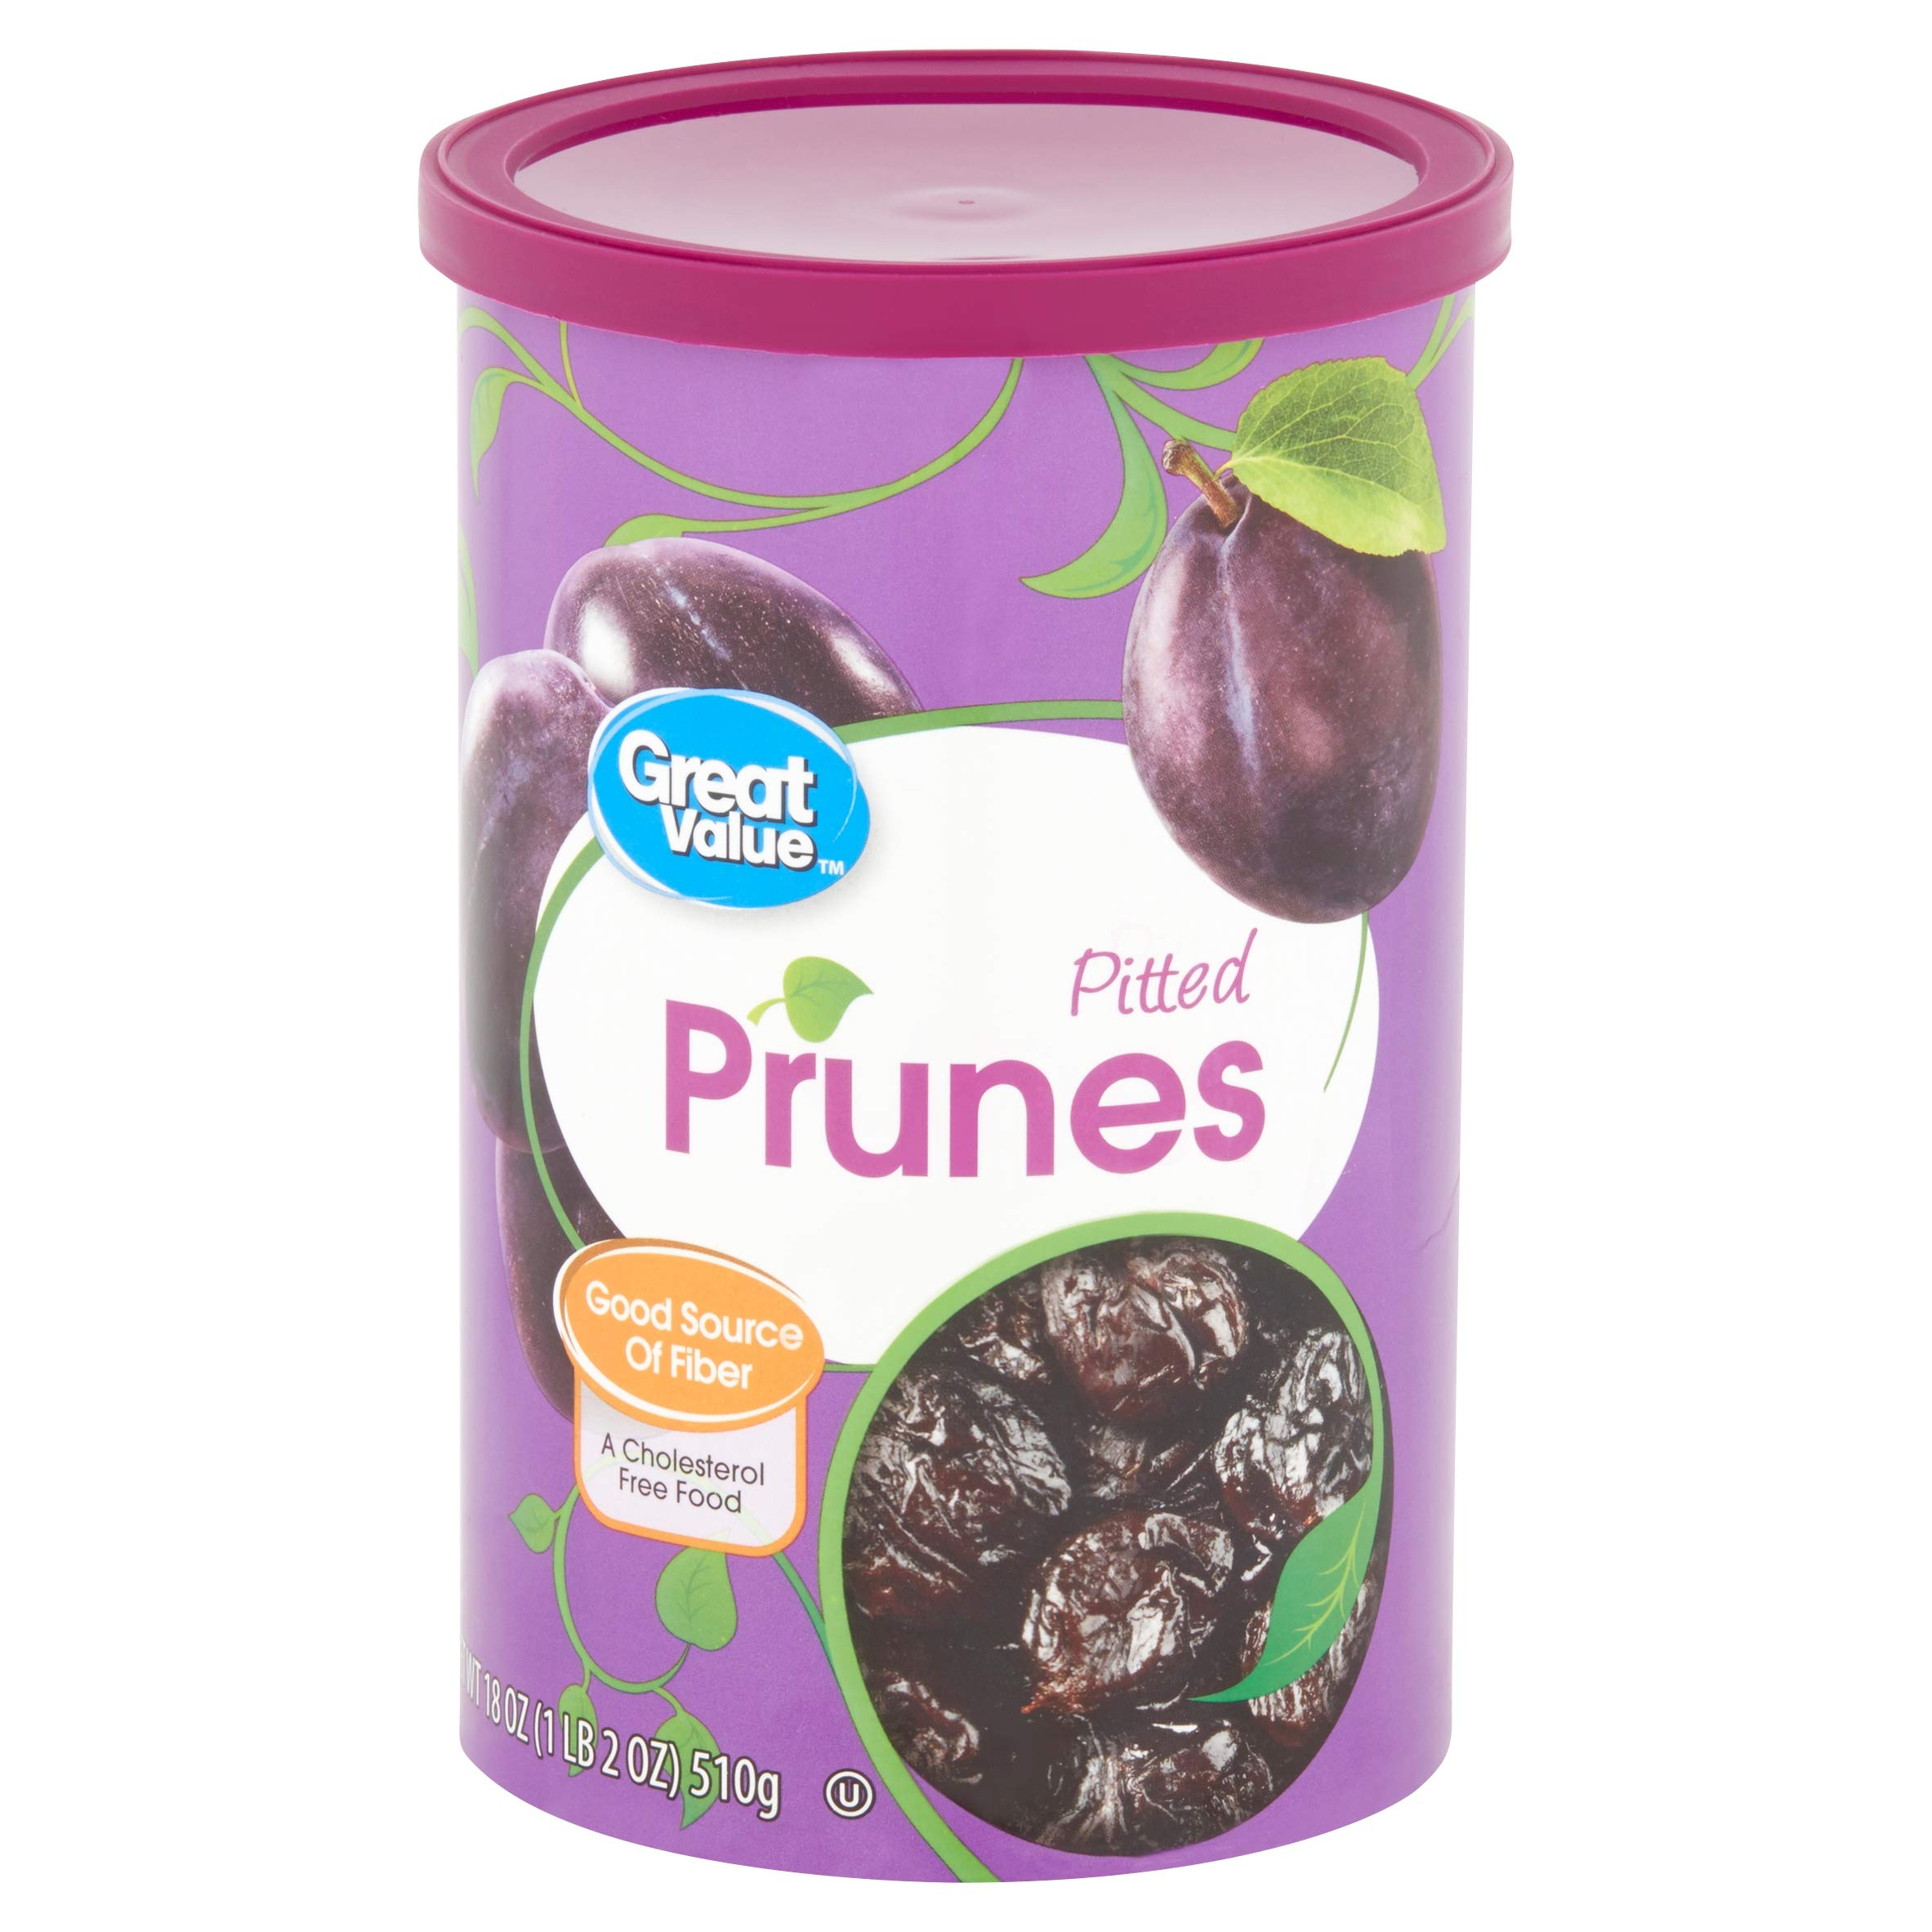 18 Oz Great Value Pitted Dried Prunes (Pack of 1)